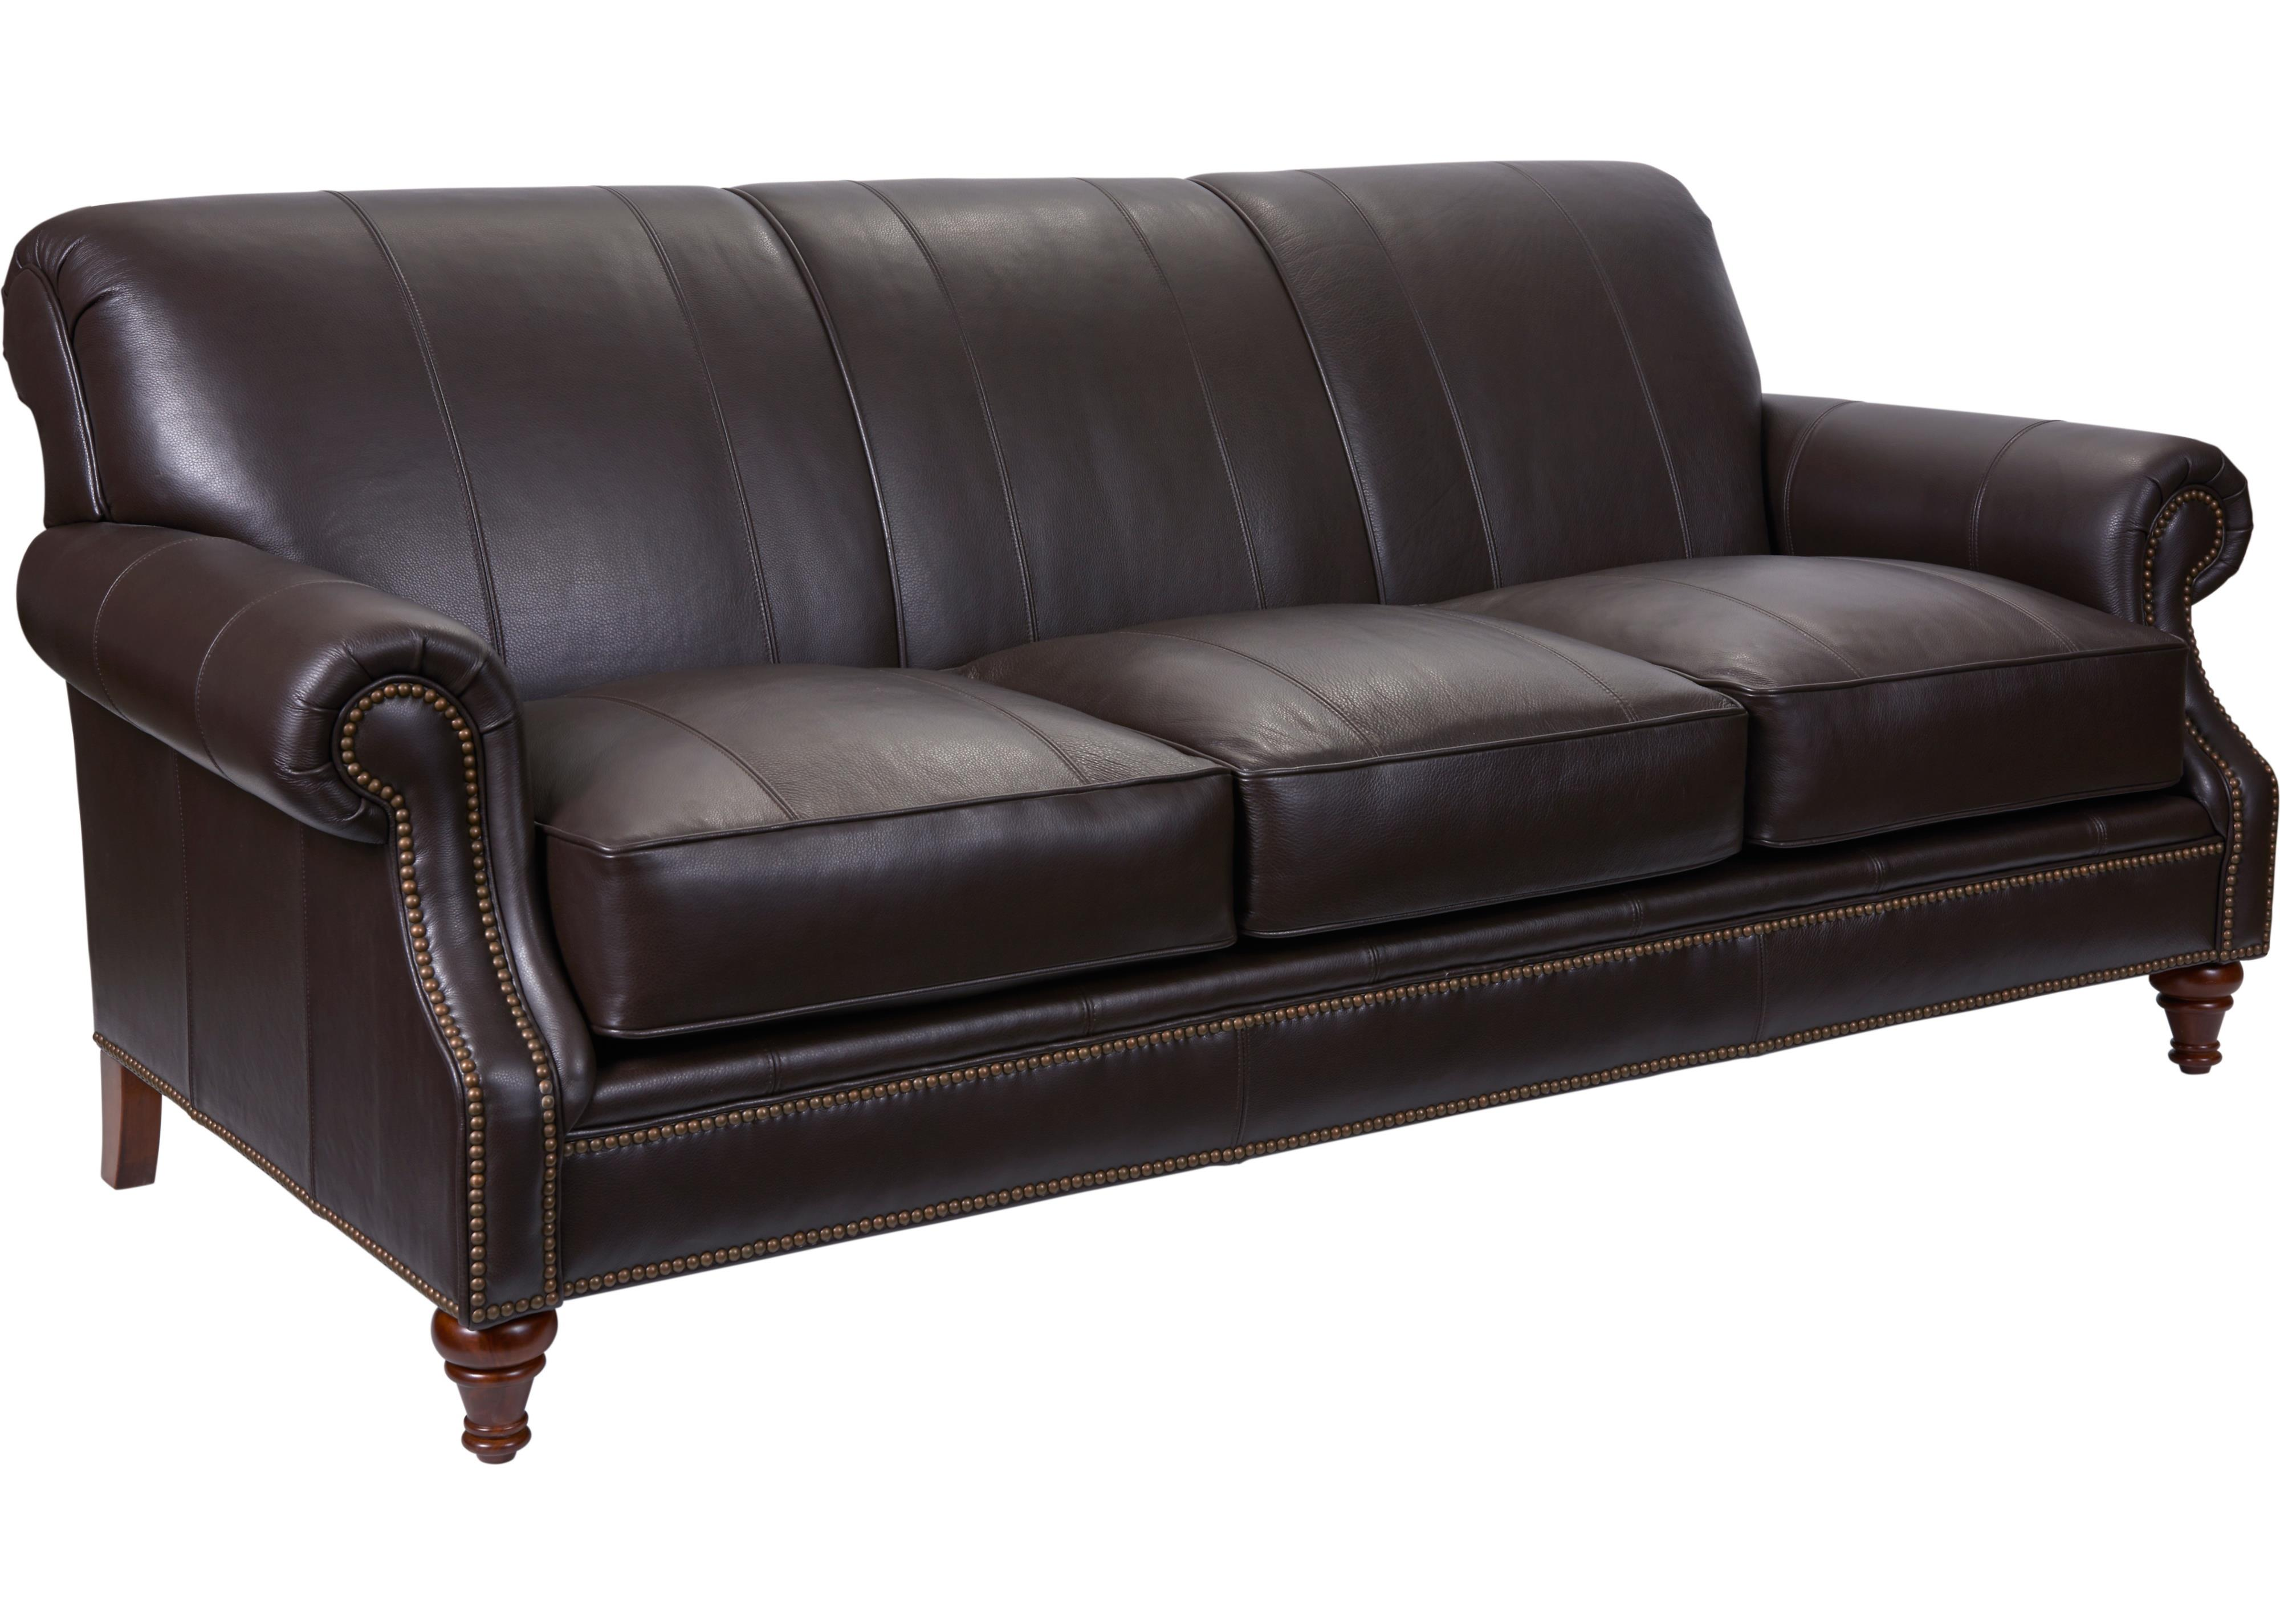 Broyhill Furniture Windsor Sofa with Rolled Arms Knight